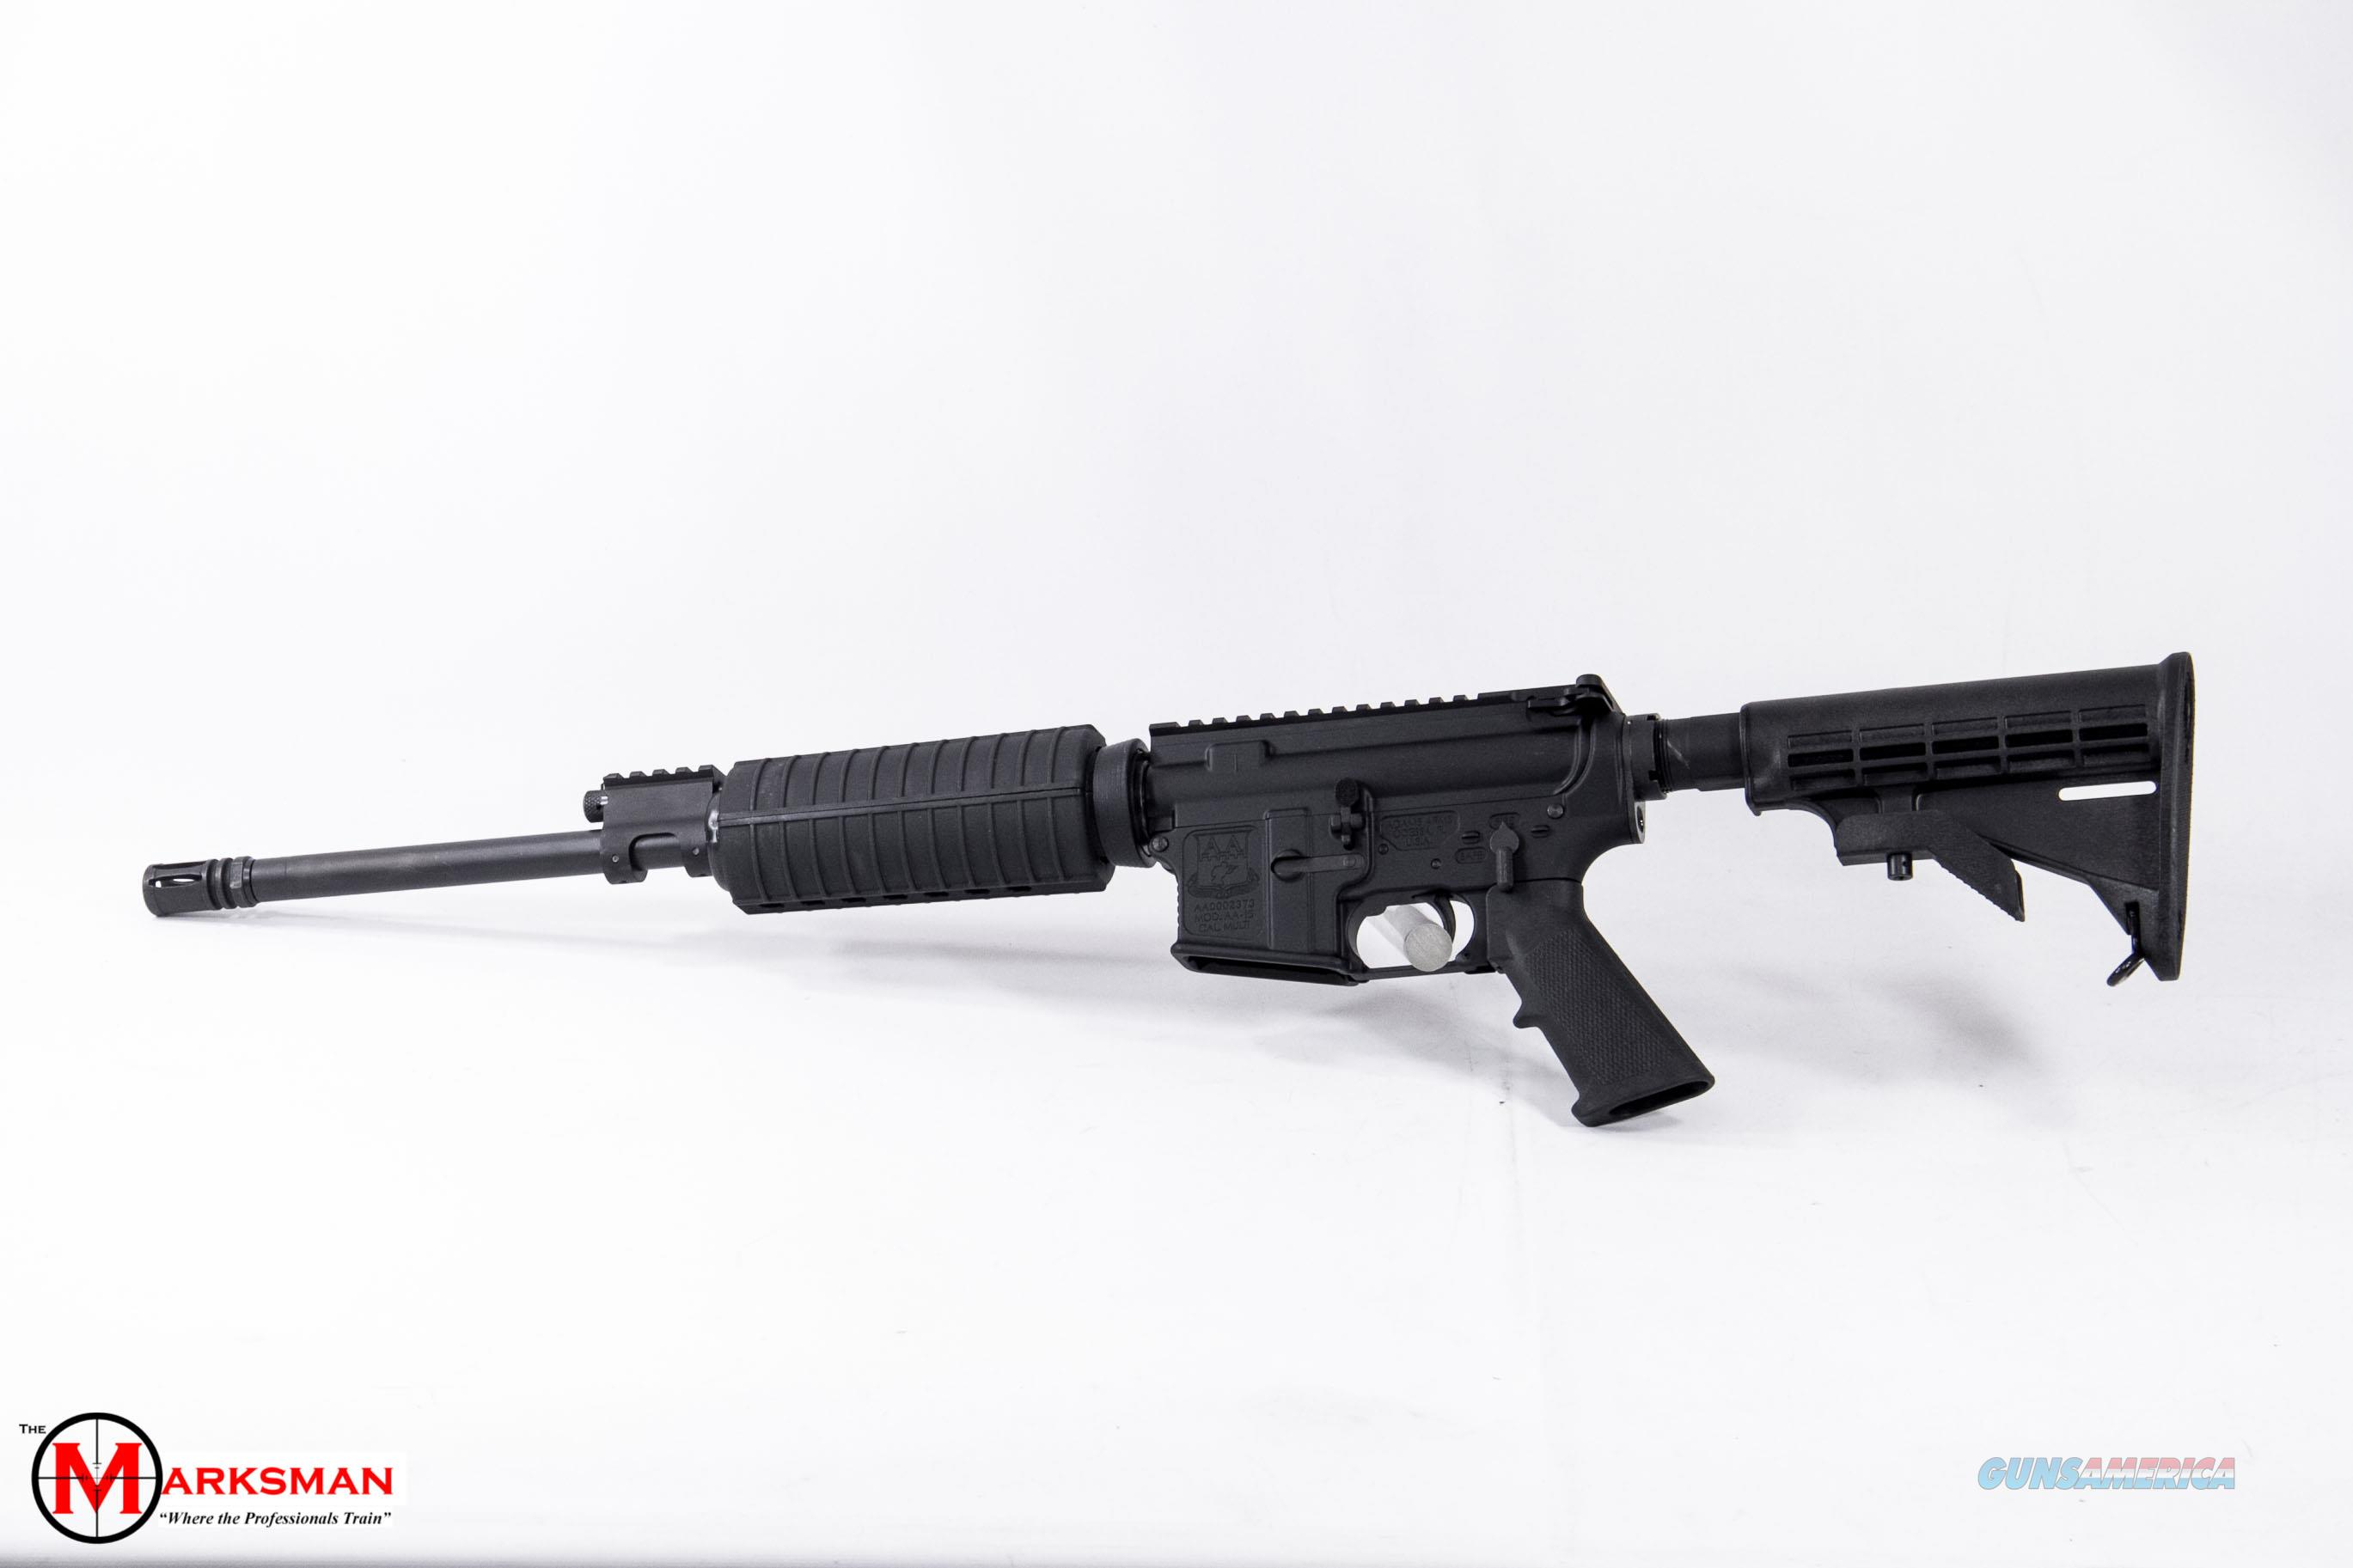 Adams Arms Carbine Base Rifle 5.56mm NATO NEW Piston AR-15  Guns > Rifles > AR-15 Rifles - Small Manufacturers > Complete Rifle